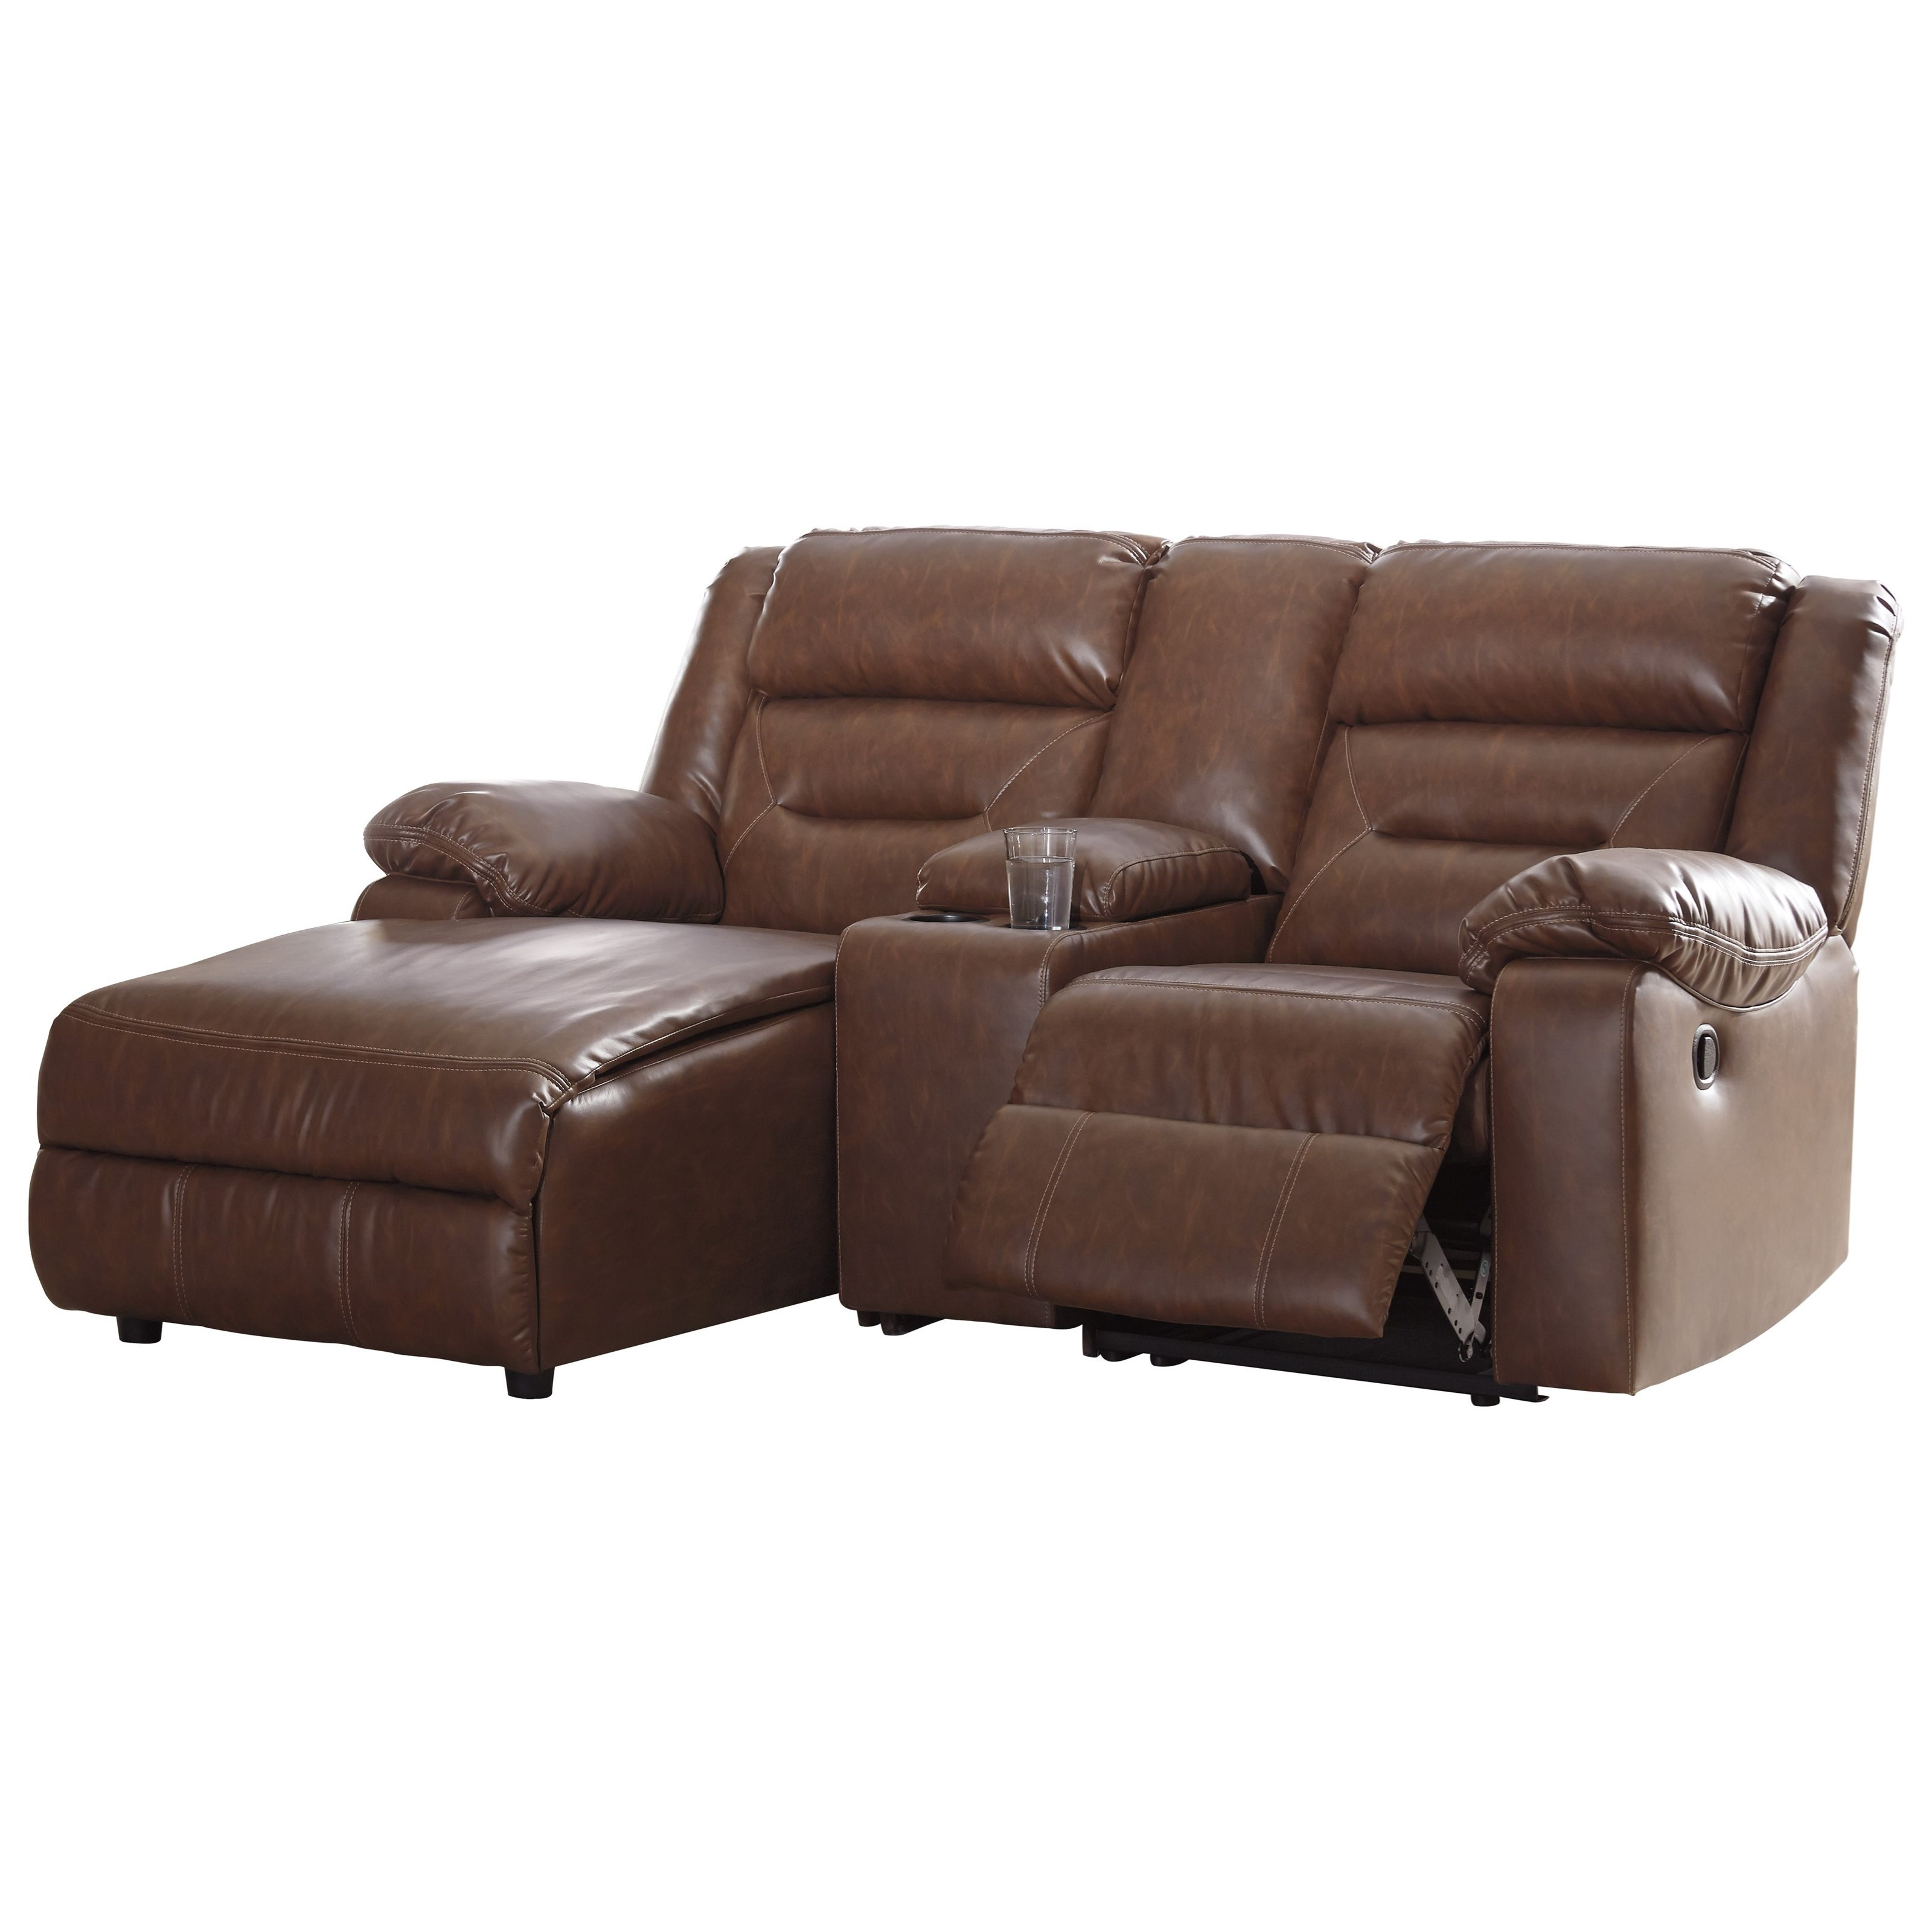 Sectional Sofas By Ashley Furniture: Signature Design By Ashley Coahoma 3-Piece Sectional Sofa